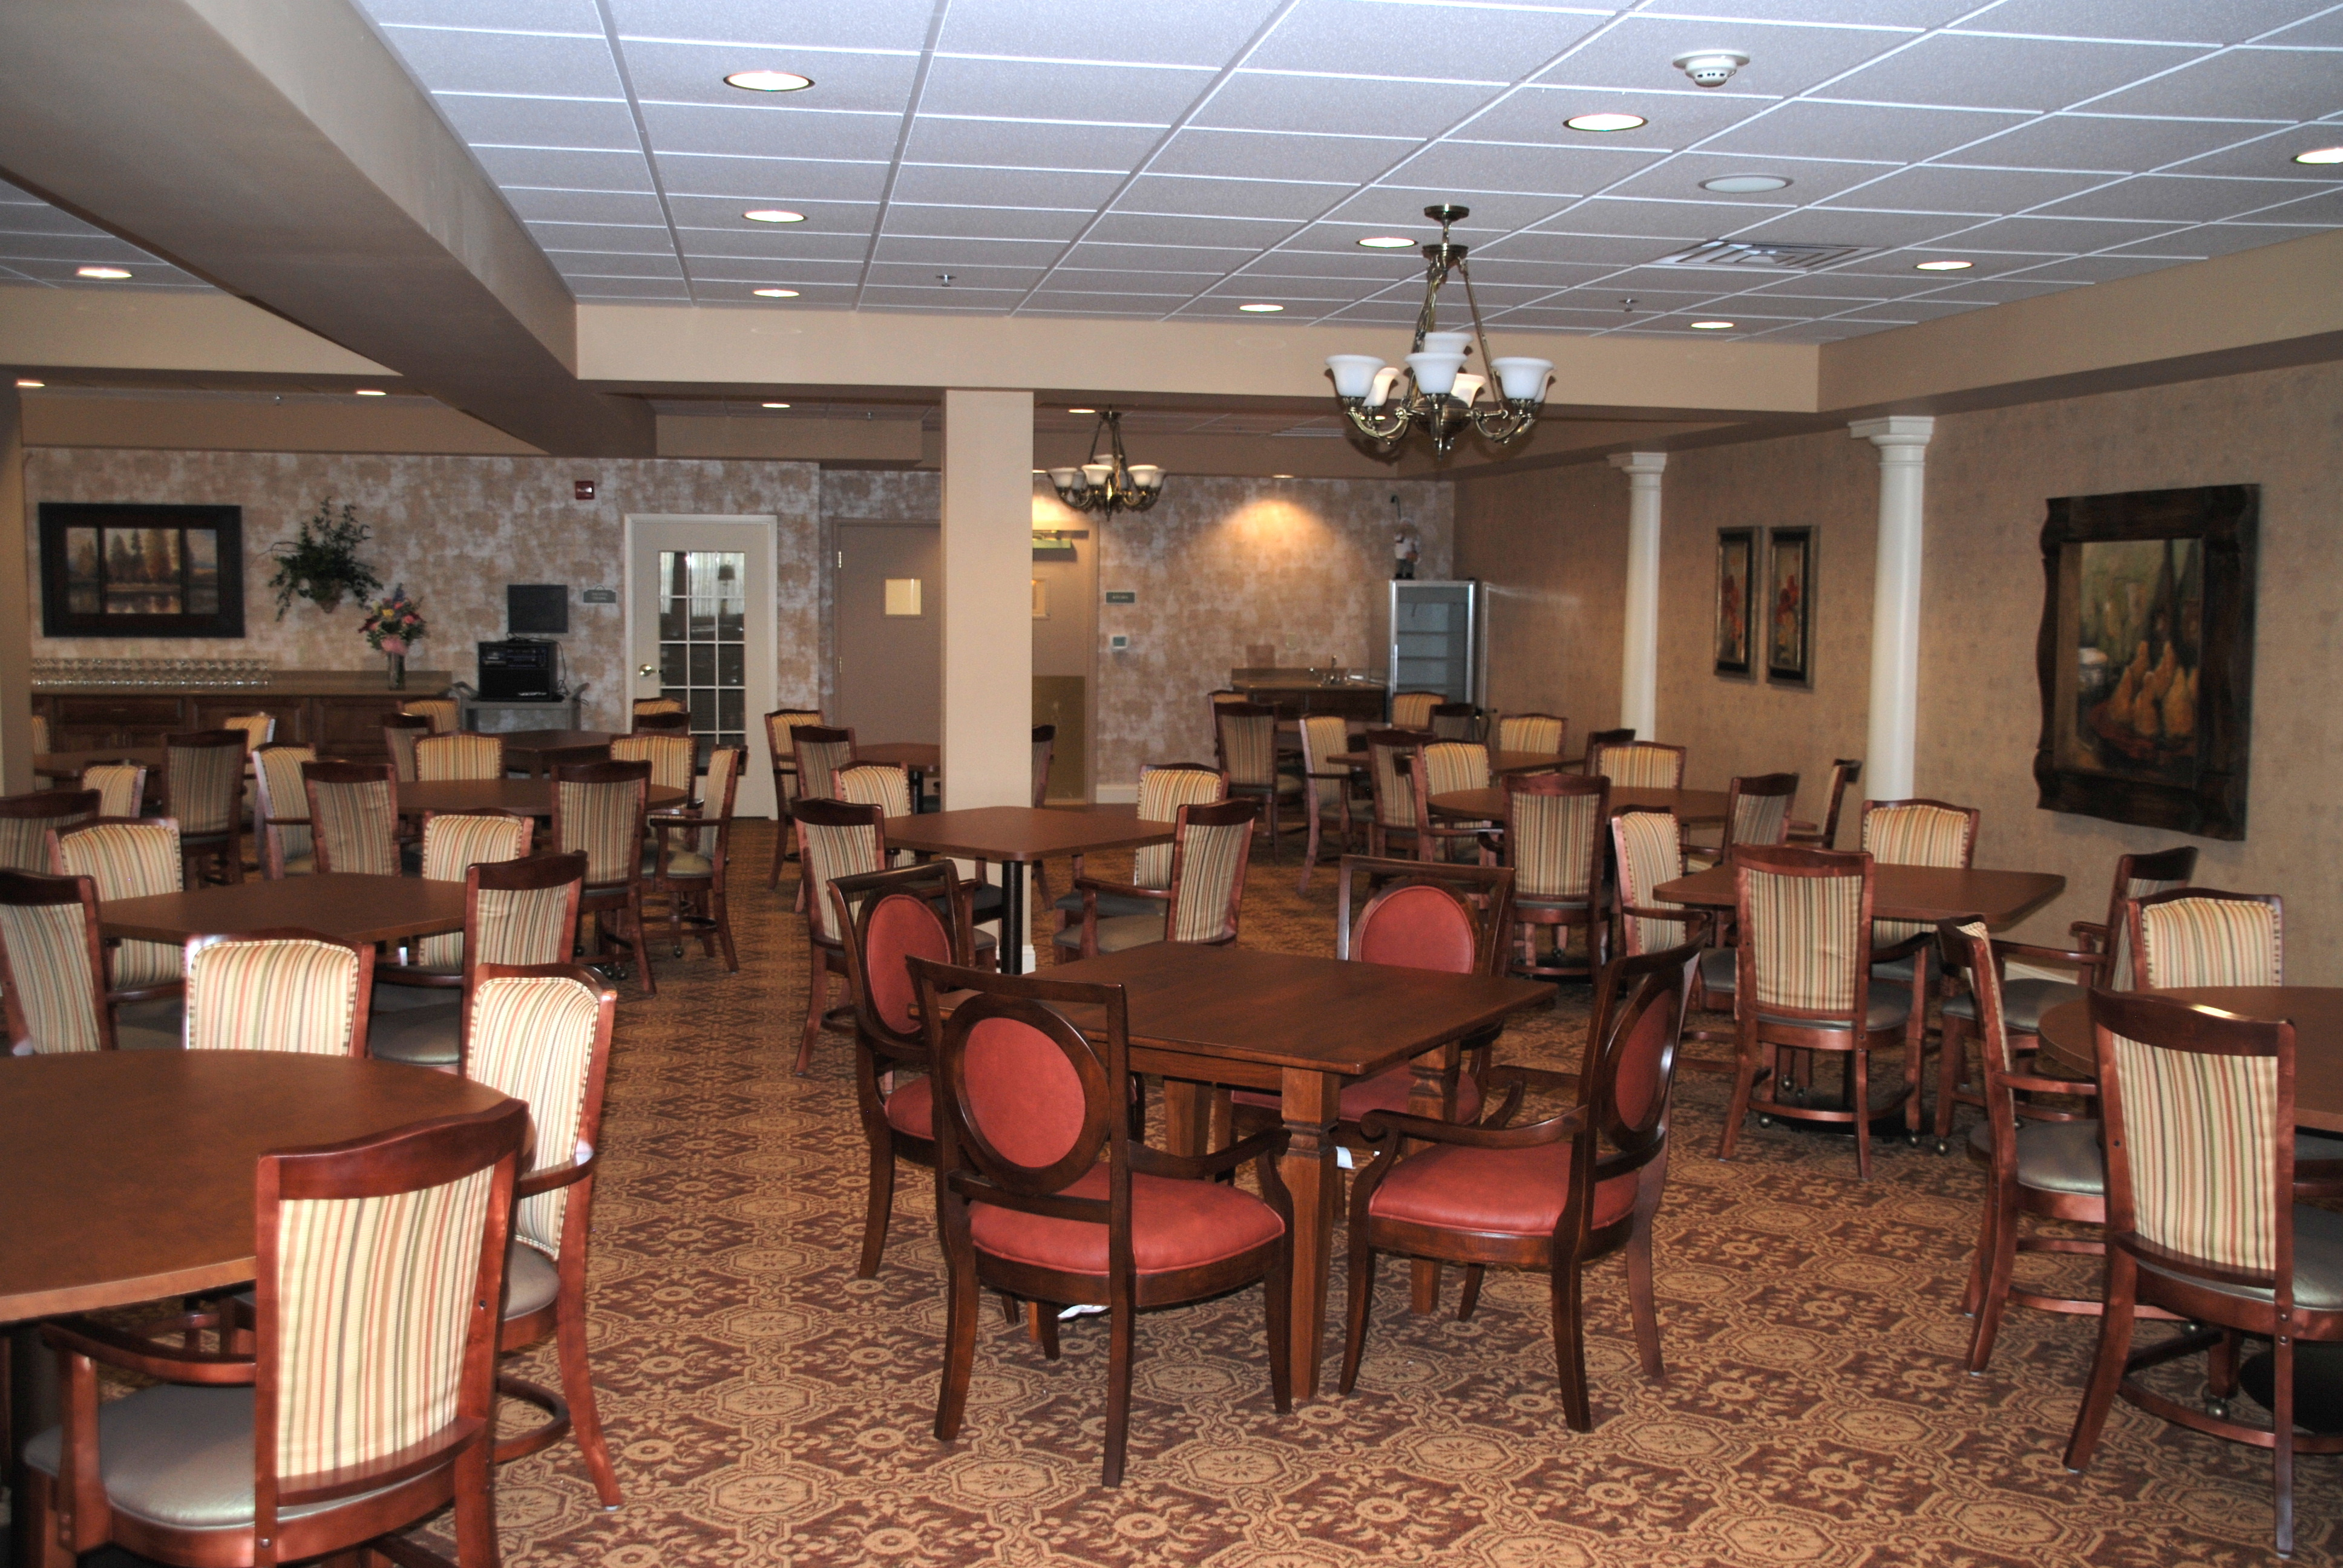 milford center senior personals Find the best milford, ct senior center on superpages we have multiple consumer reviews, photos and opening hours.